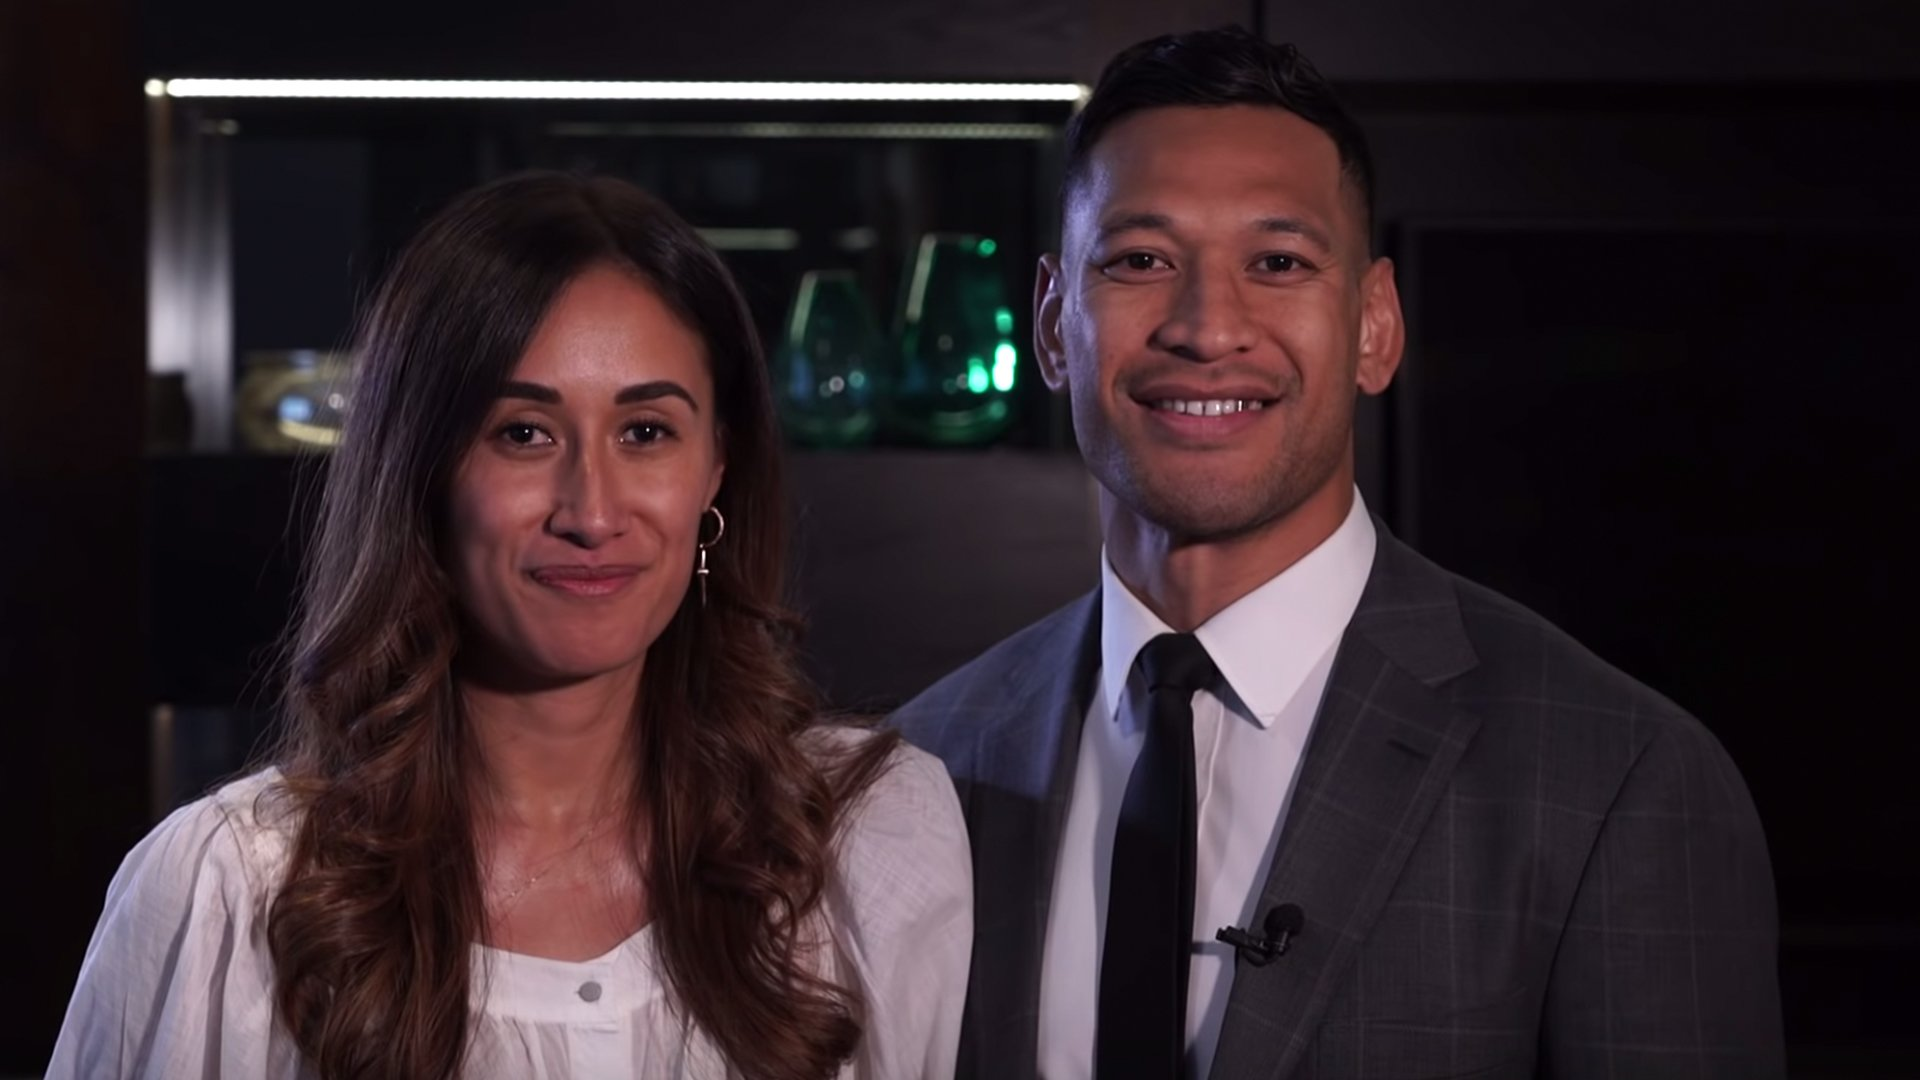 Here's the video statement that Israel Folau made after he got his apology and settlement from Rugby Australia